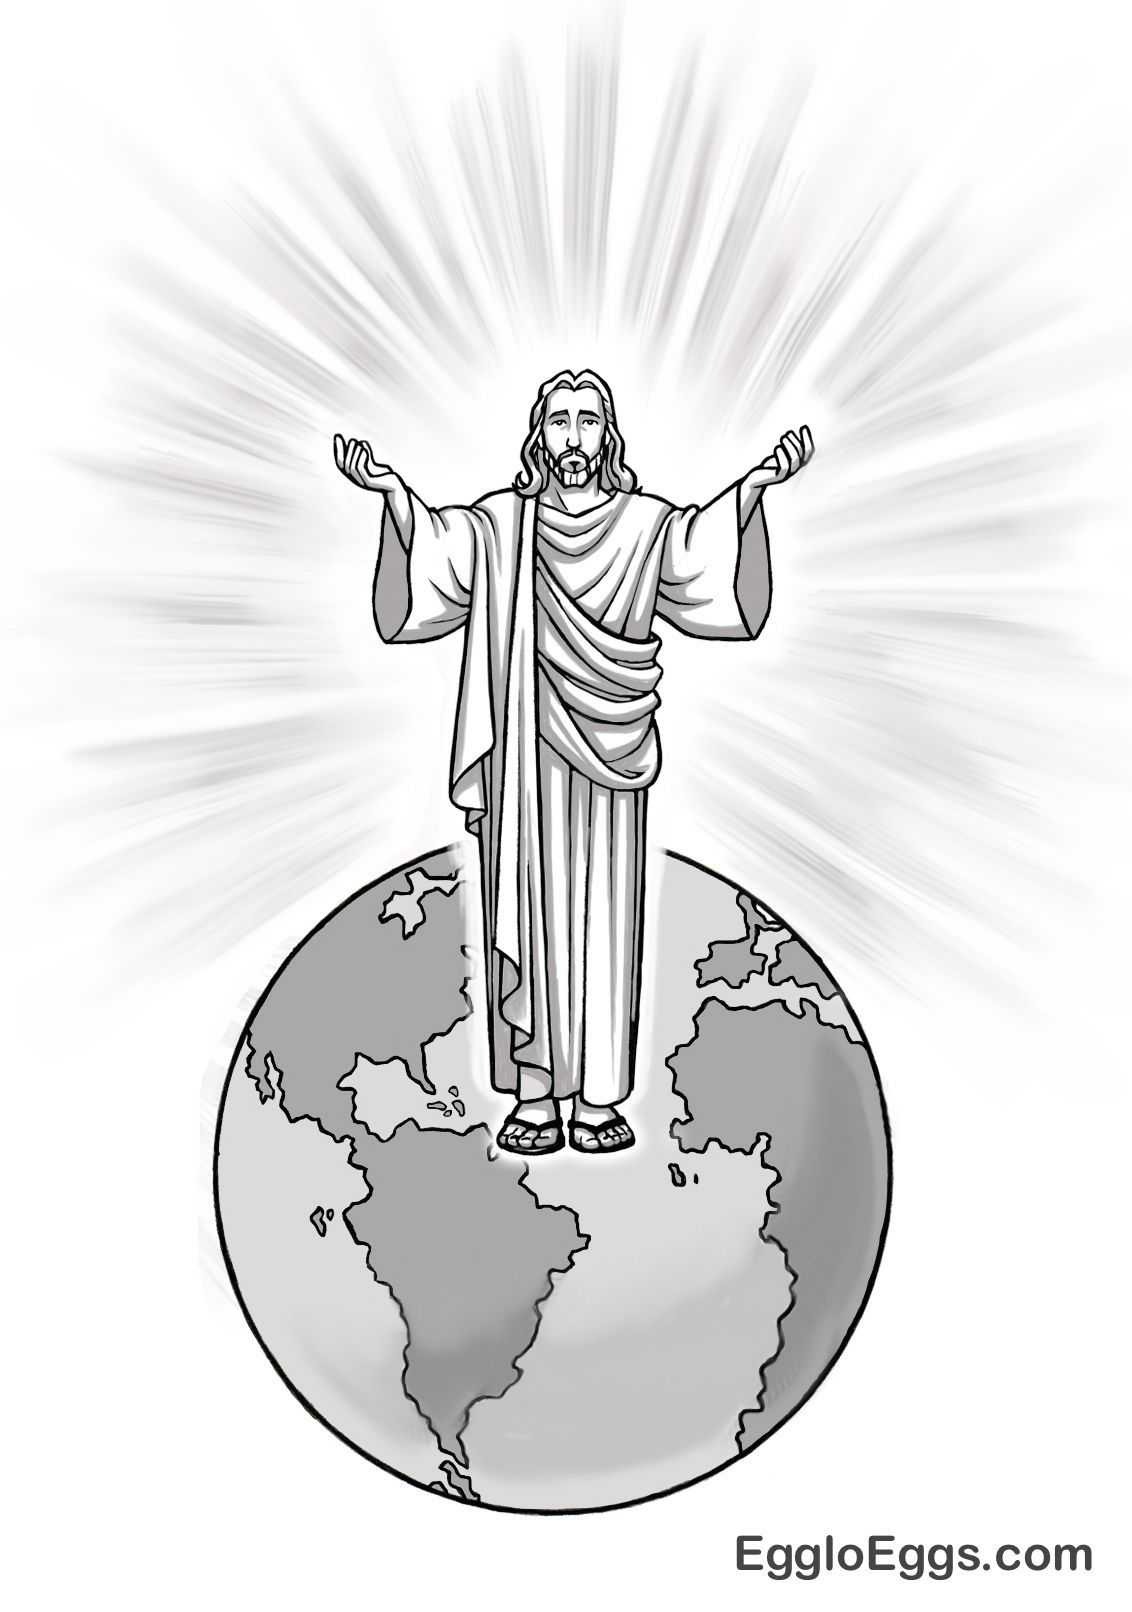 jesus is the light of the world coloring page or graphic from egglo eggs